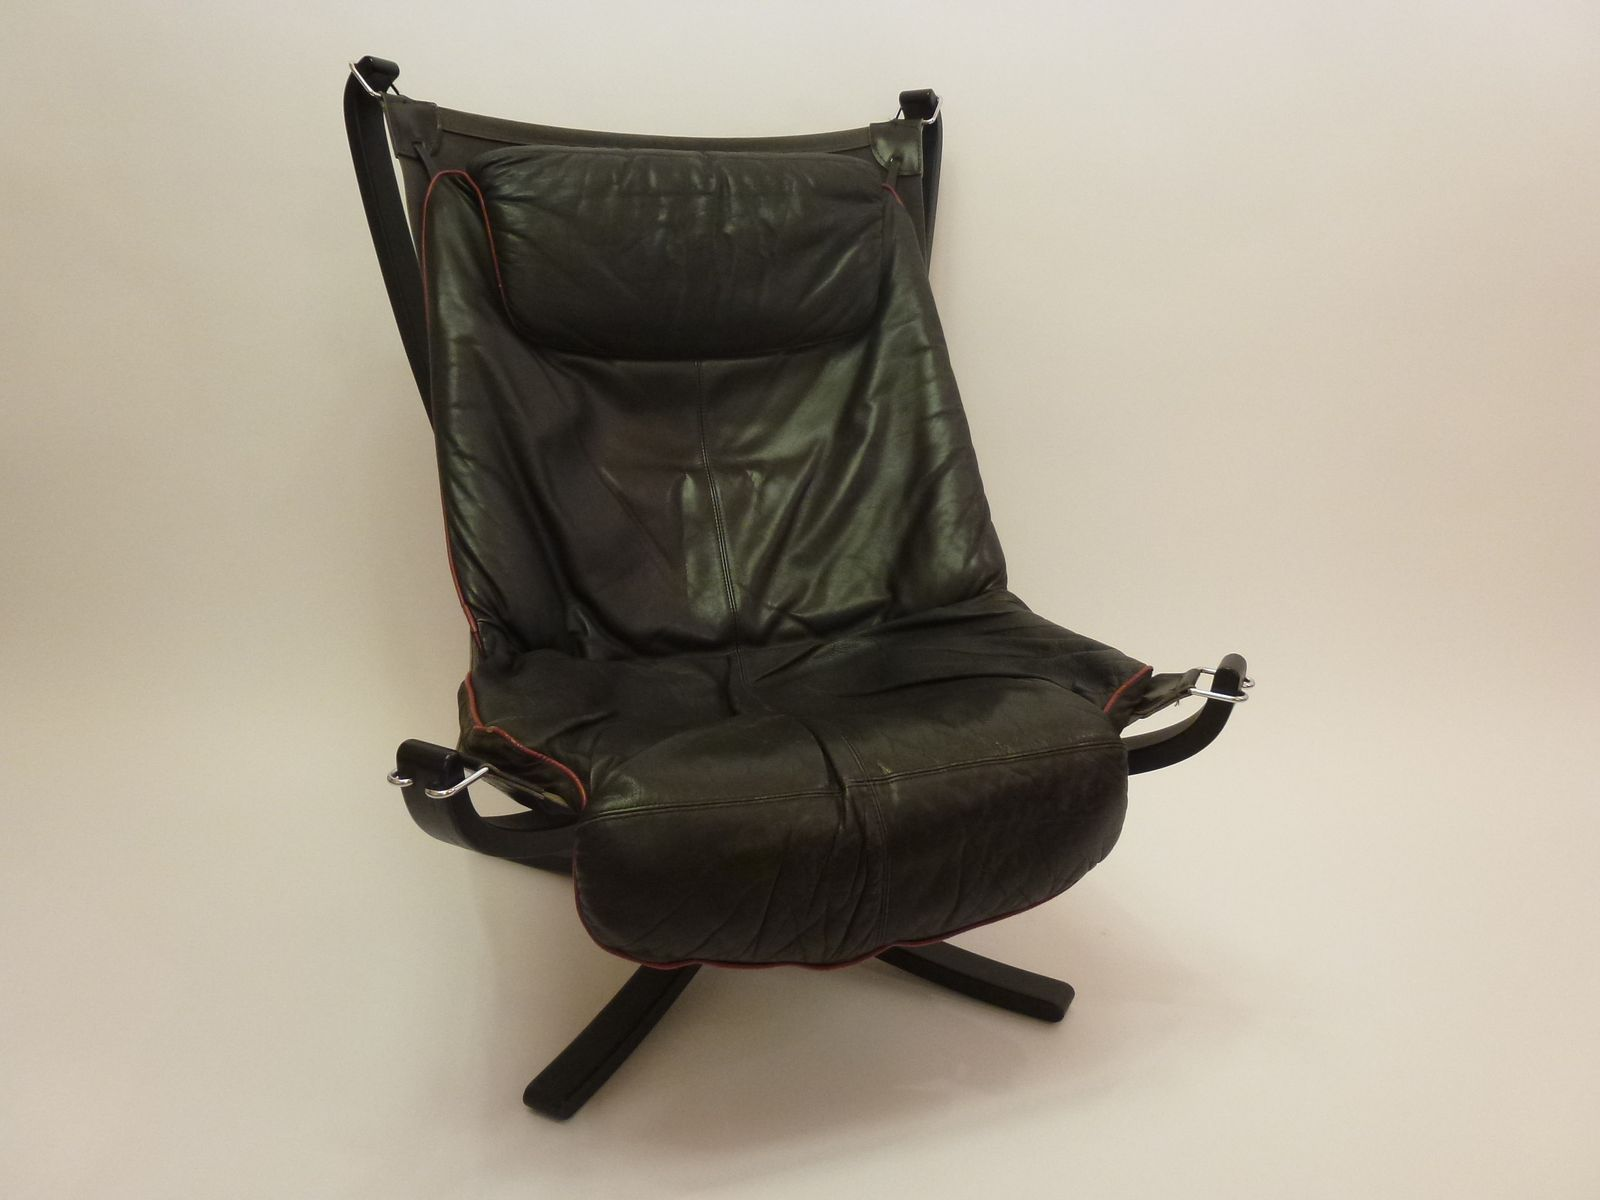 norway design mobler : Vintage Norwegian Falcon Chair from Vatne Mobler for sale ...